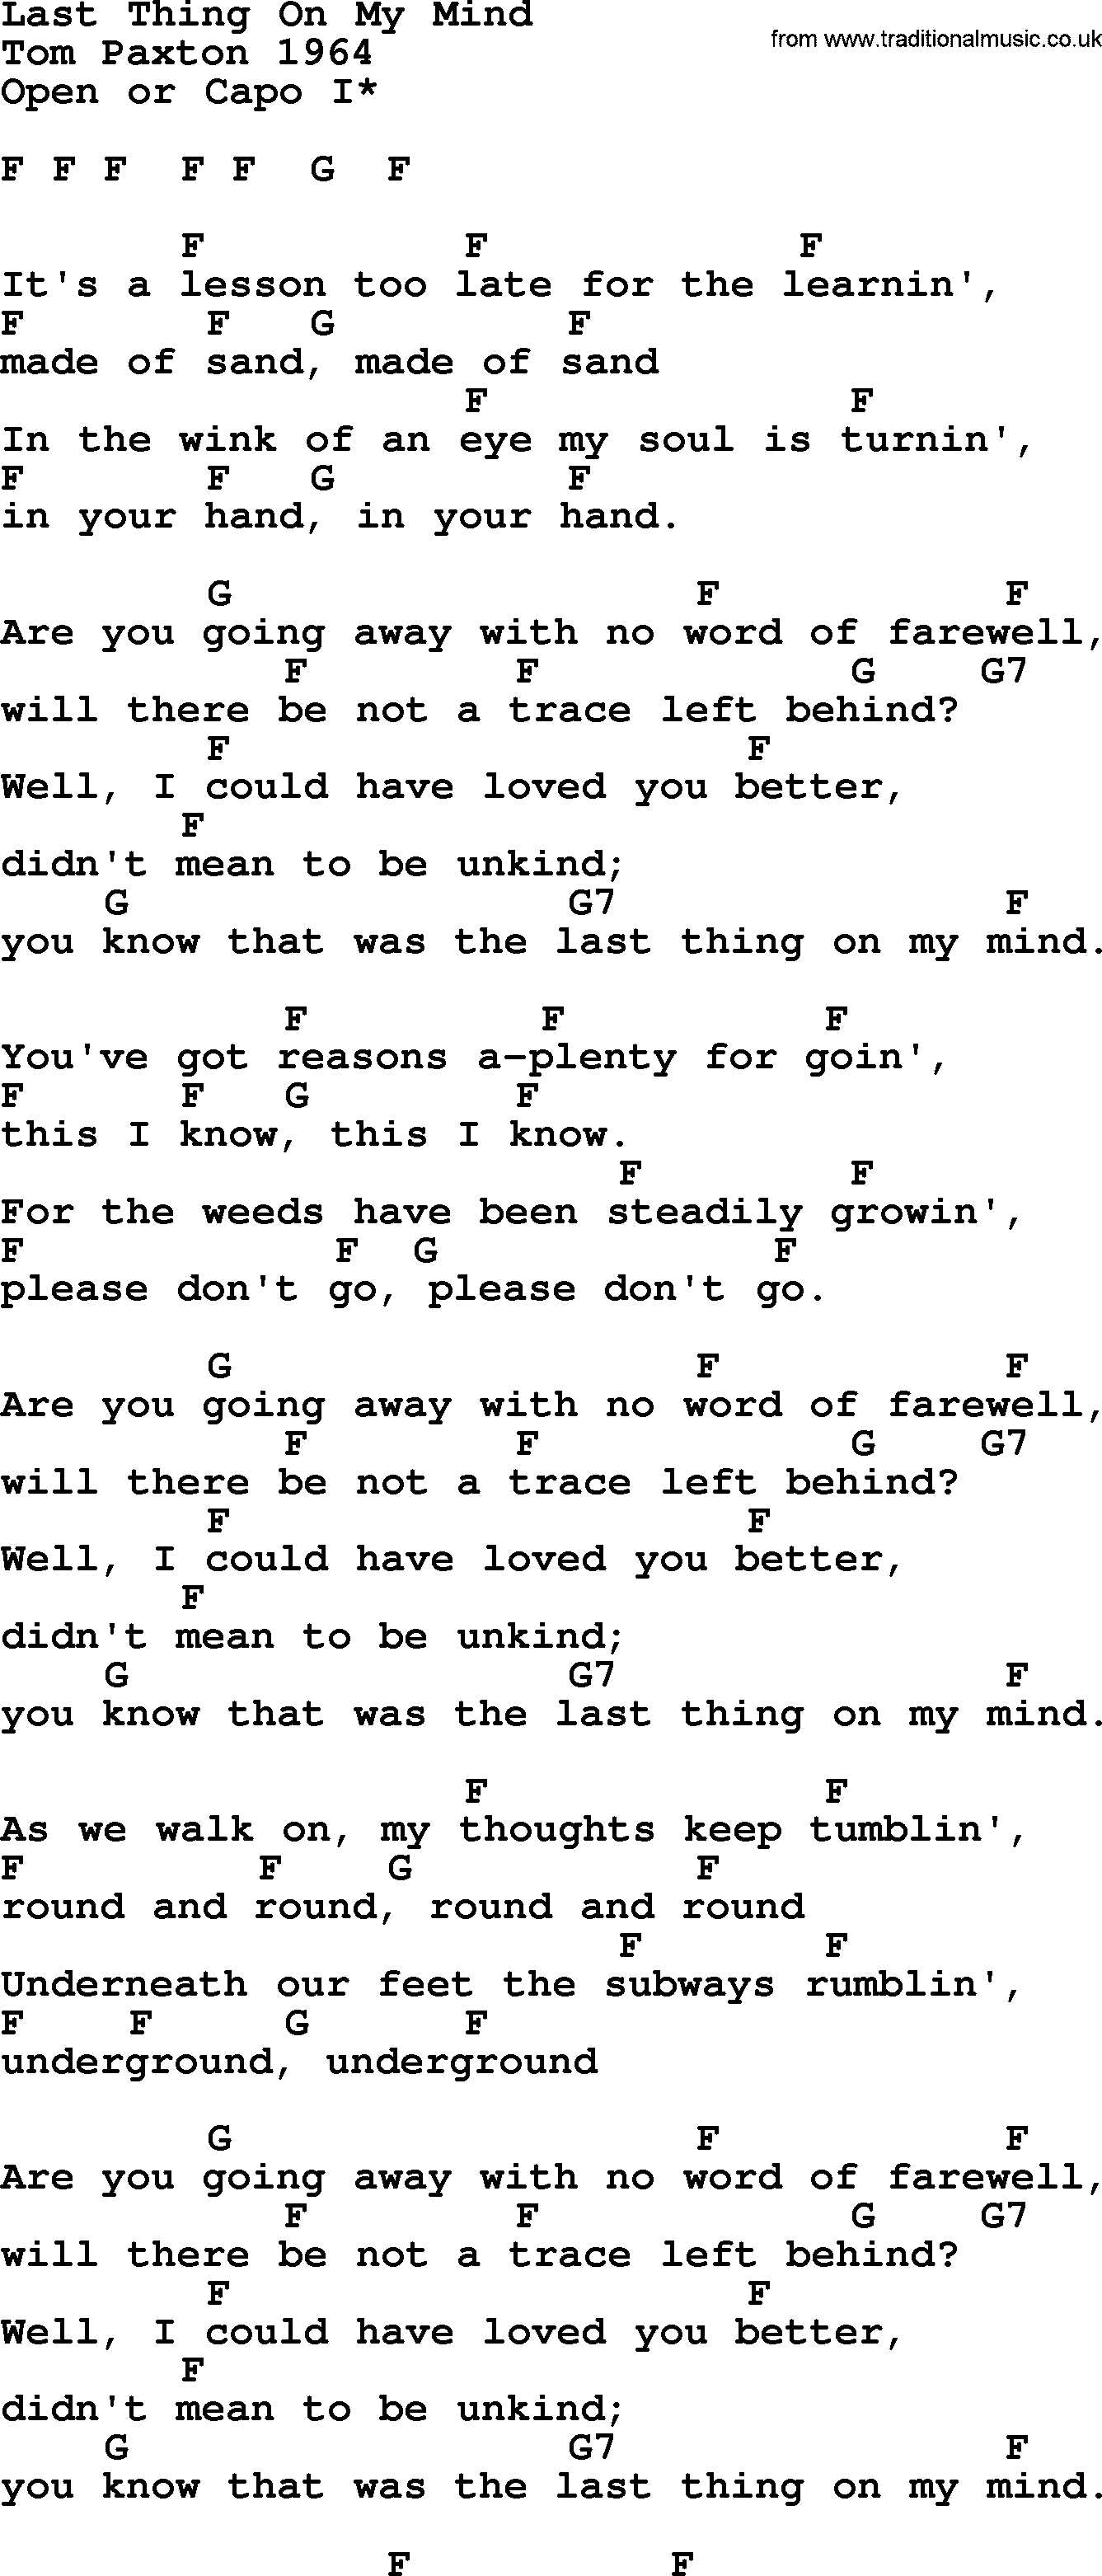 Last Thing On My Mind by Tom Paxton   lyrics and chords